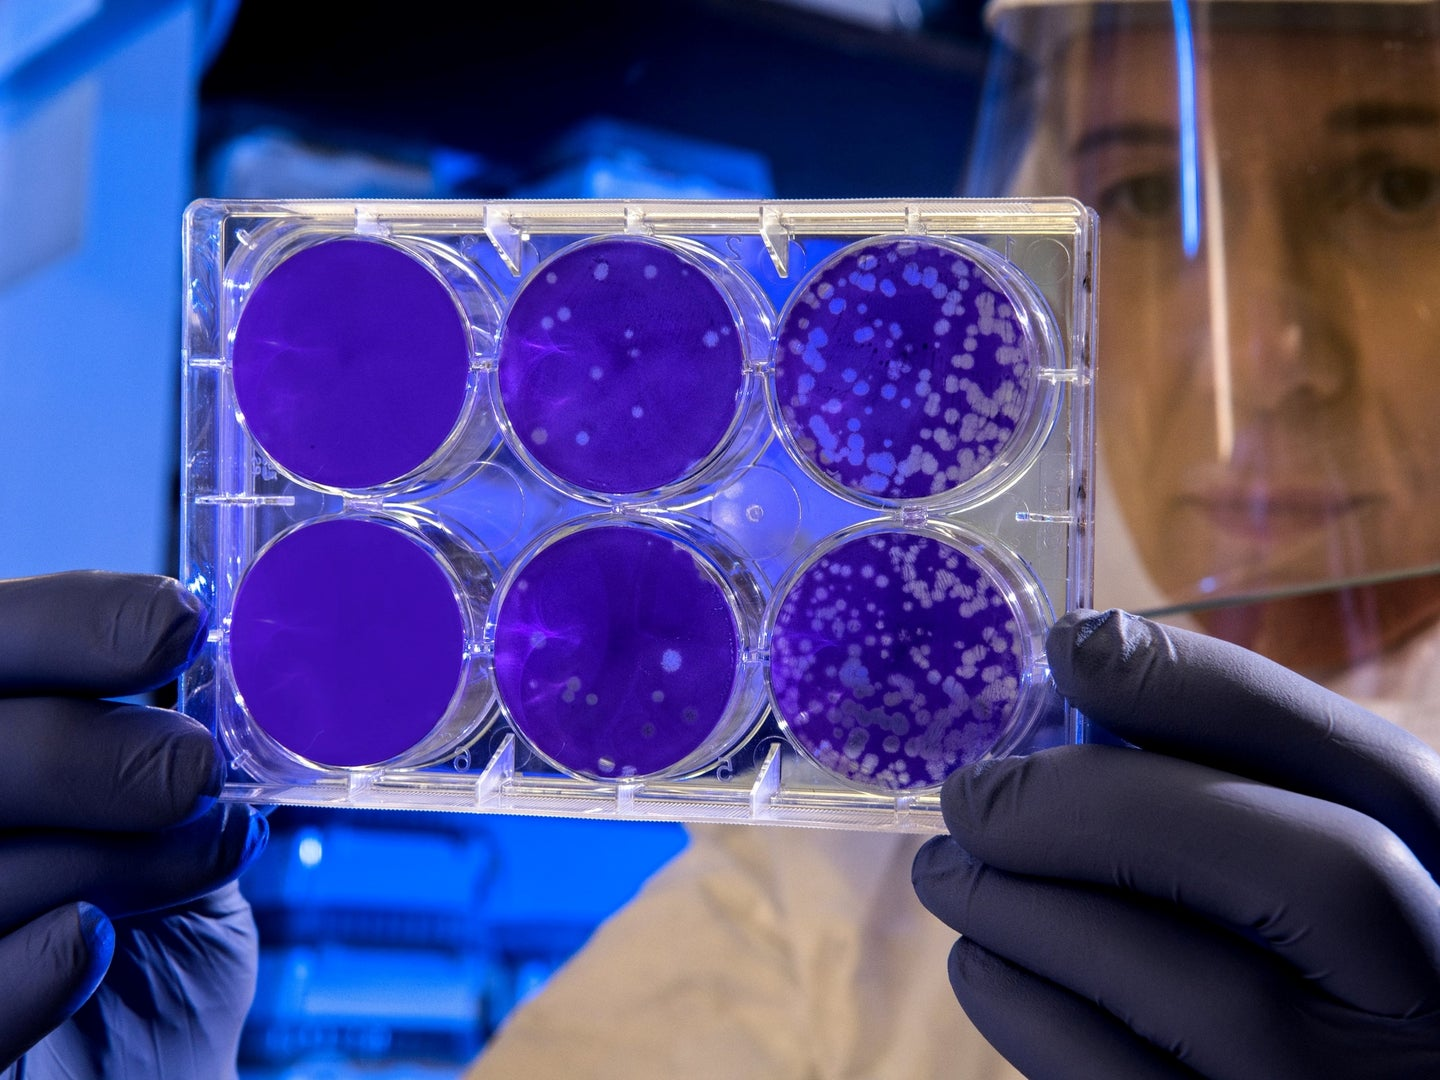 A scientist holds up a lab apparatus with virus samples.